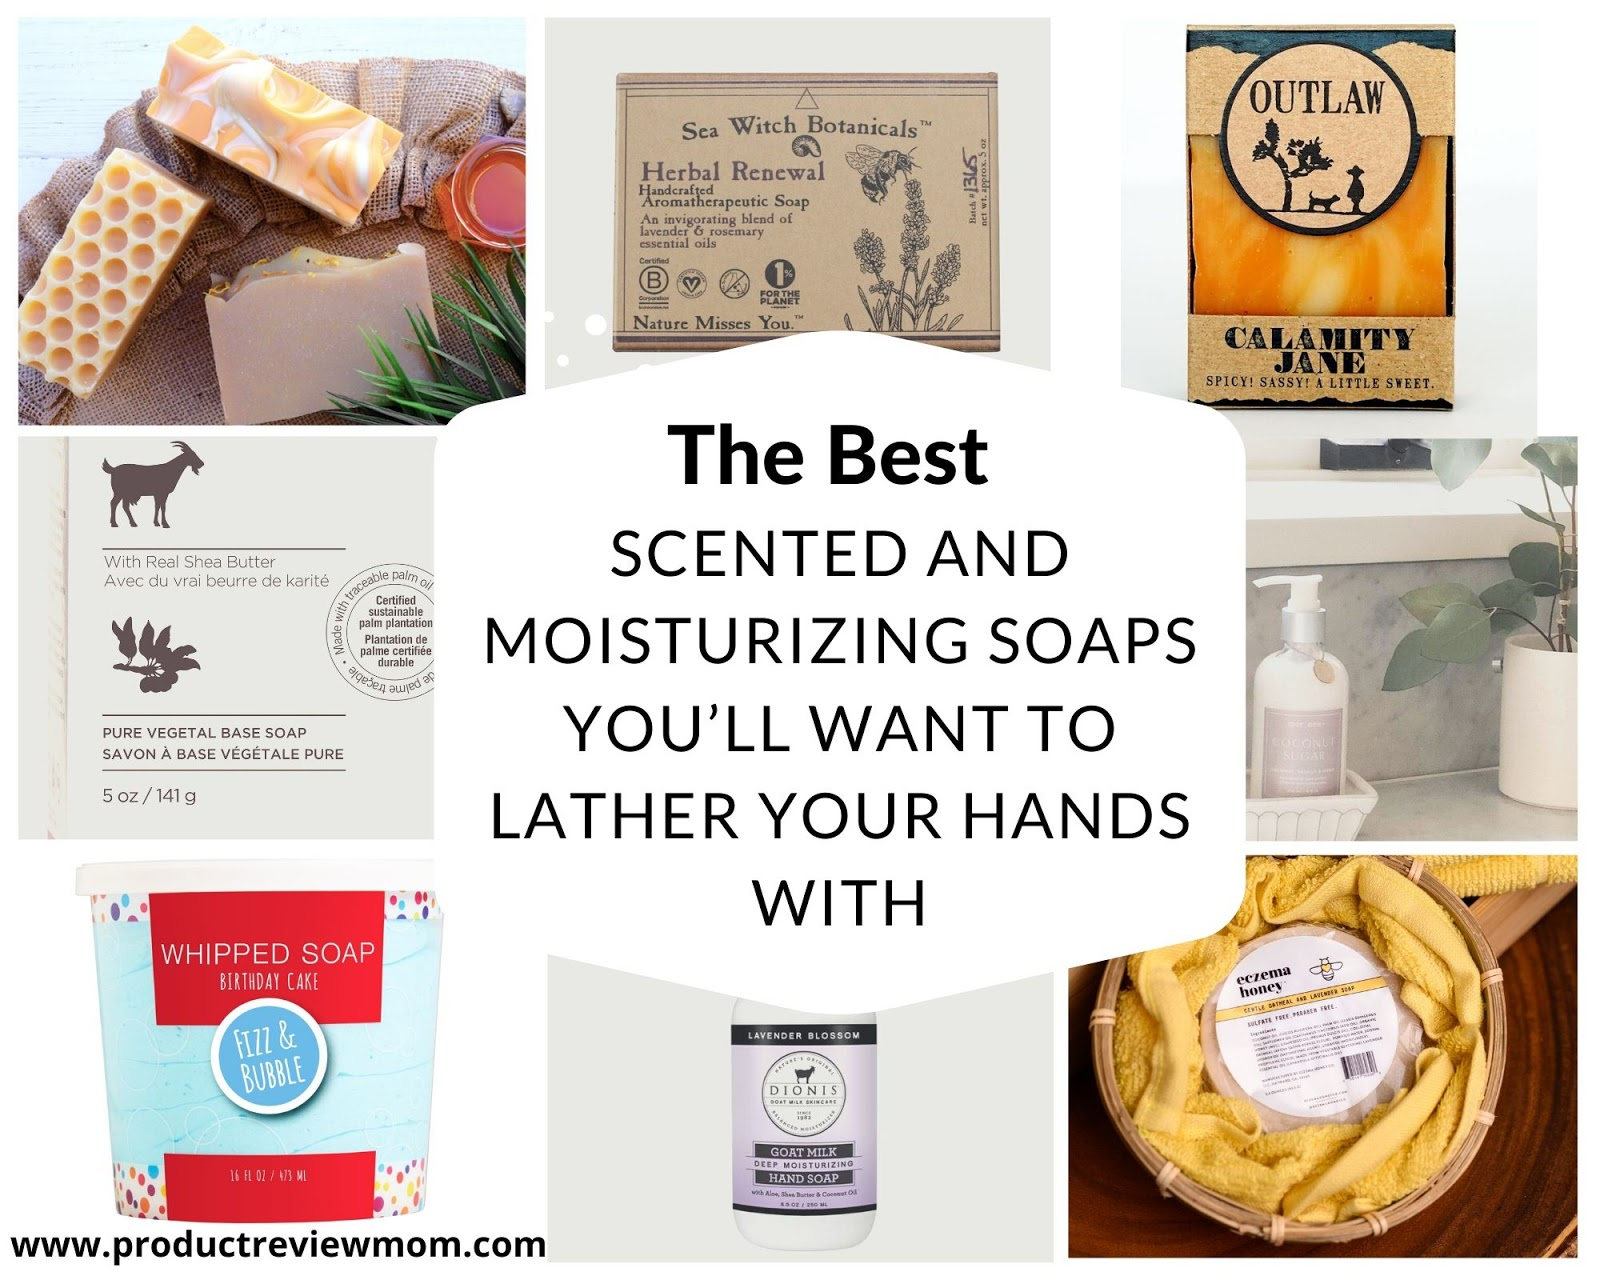 The Best Scented and Moisturizing Soaps You'll Want to Lather Your Hands With